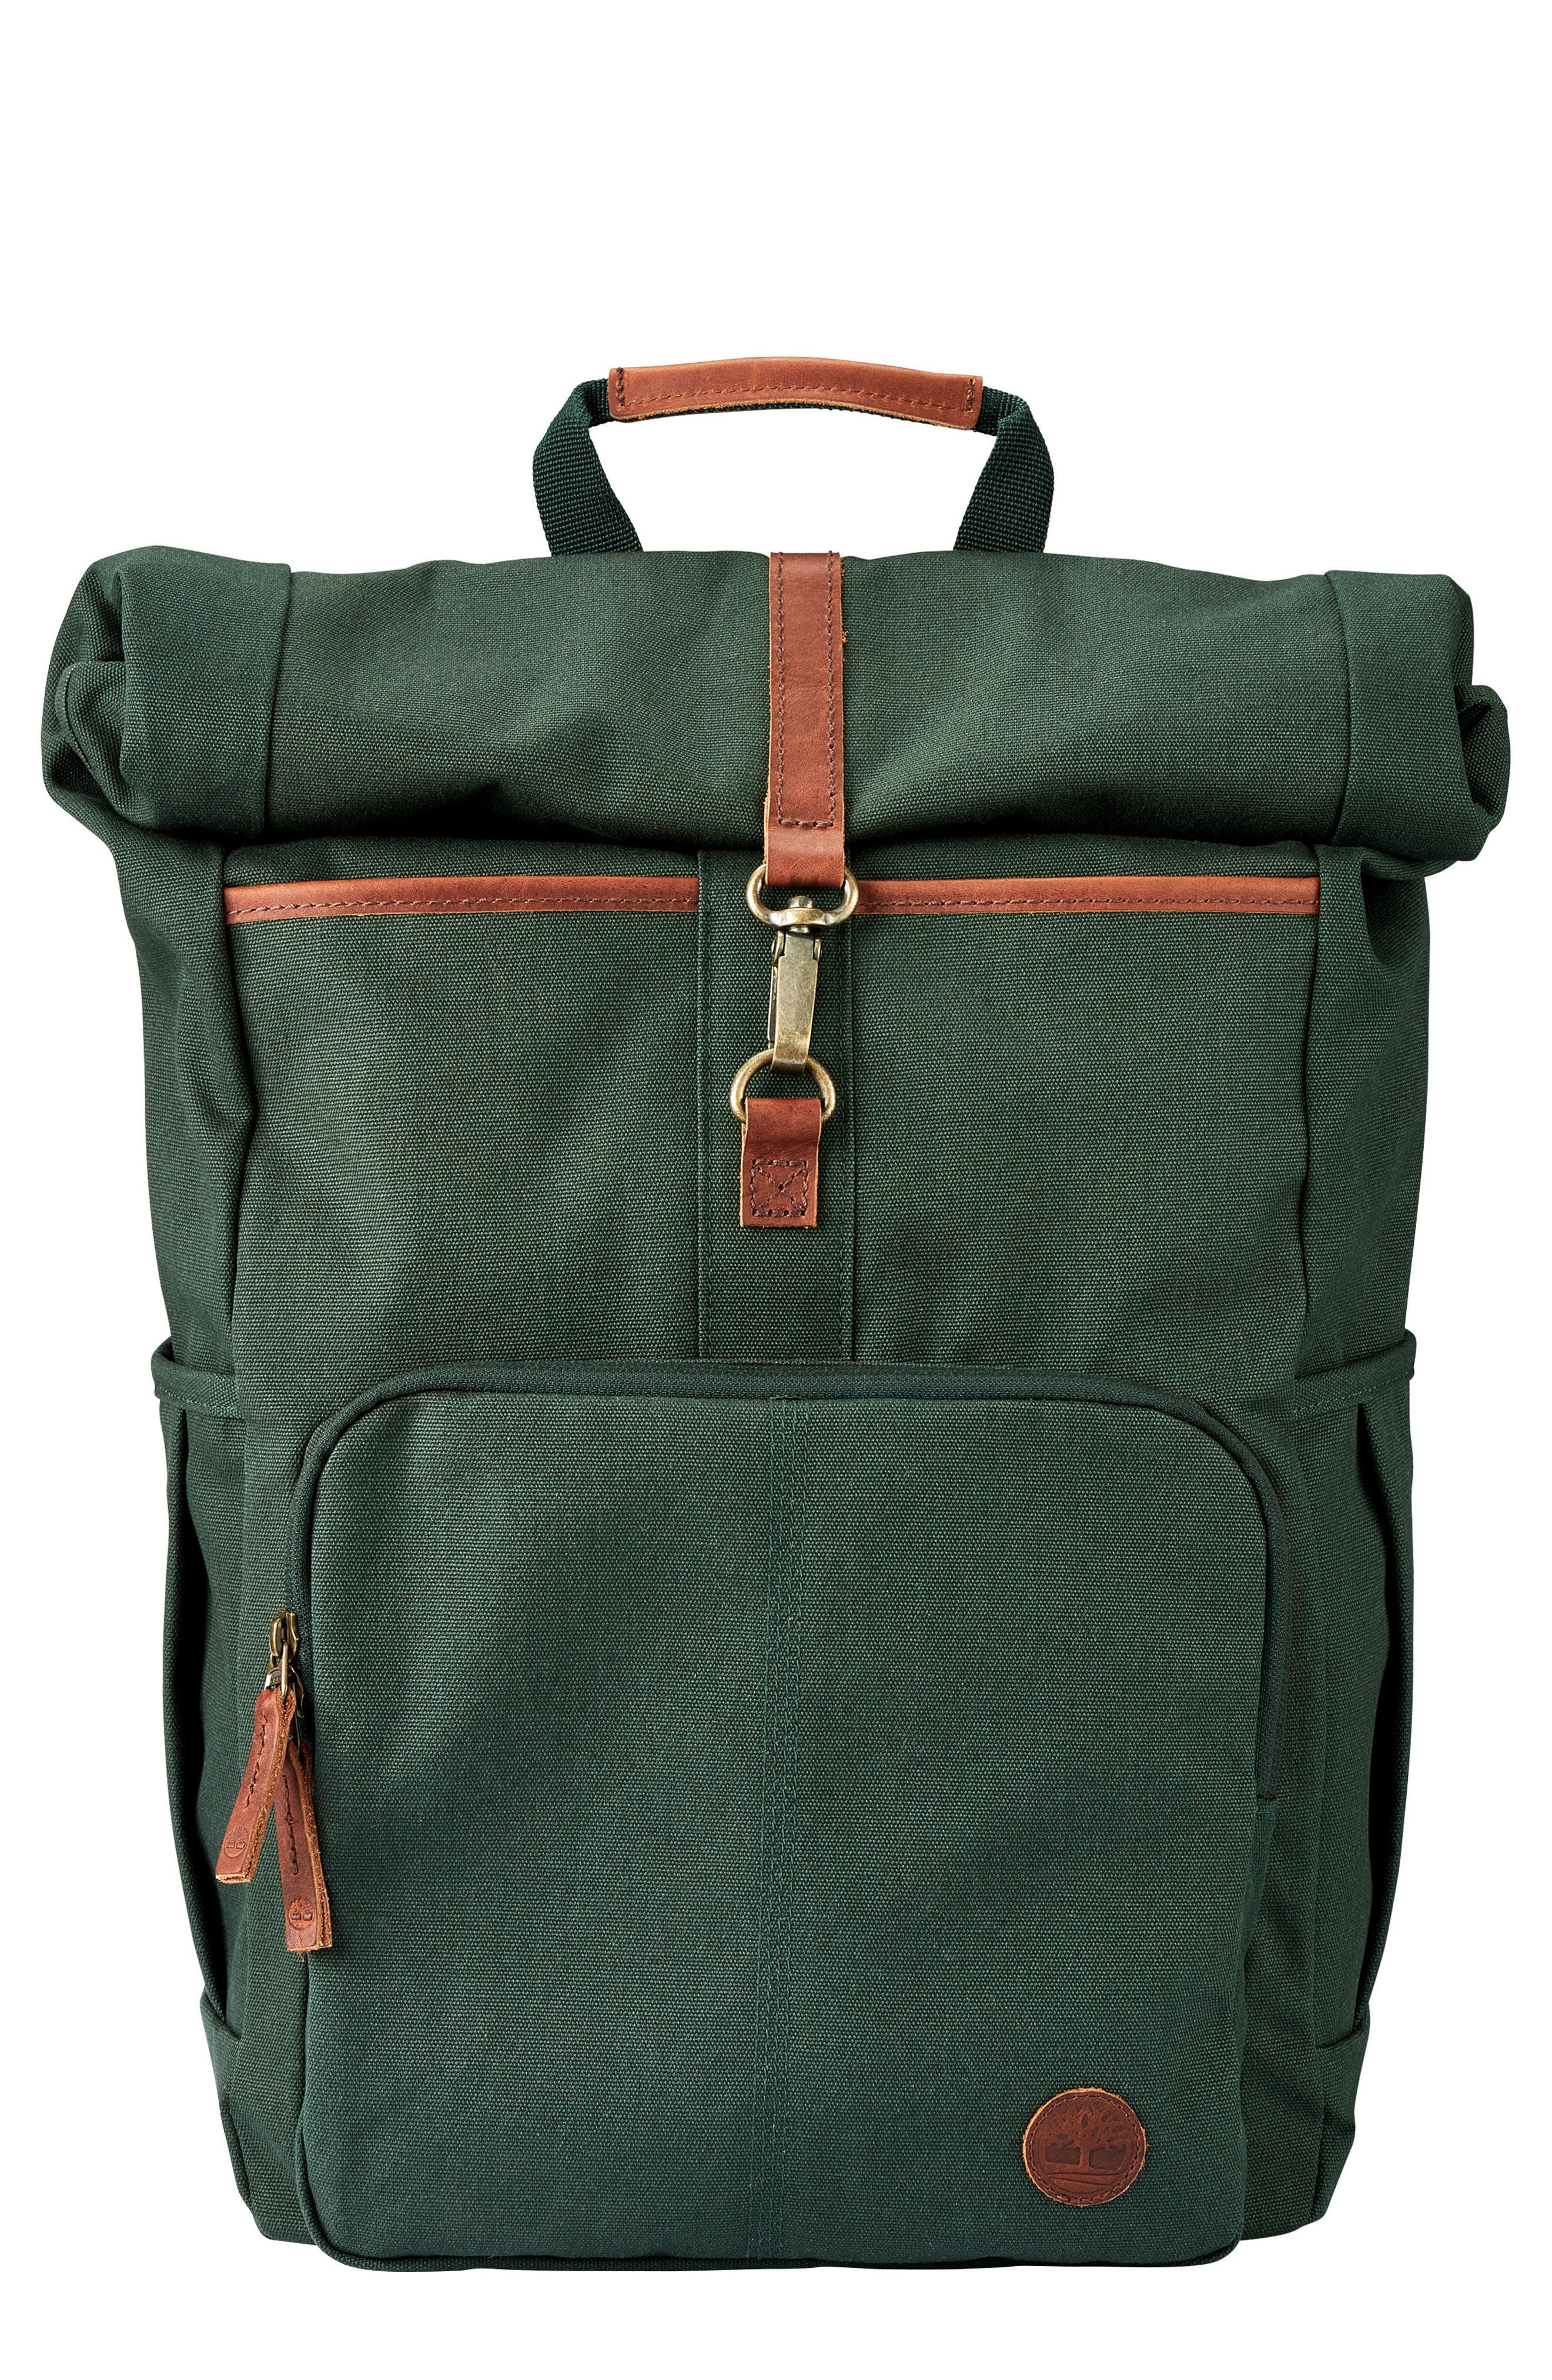 Walnut Hill Rolltop Backpack,                             Main thumbnail 4, color,